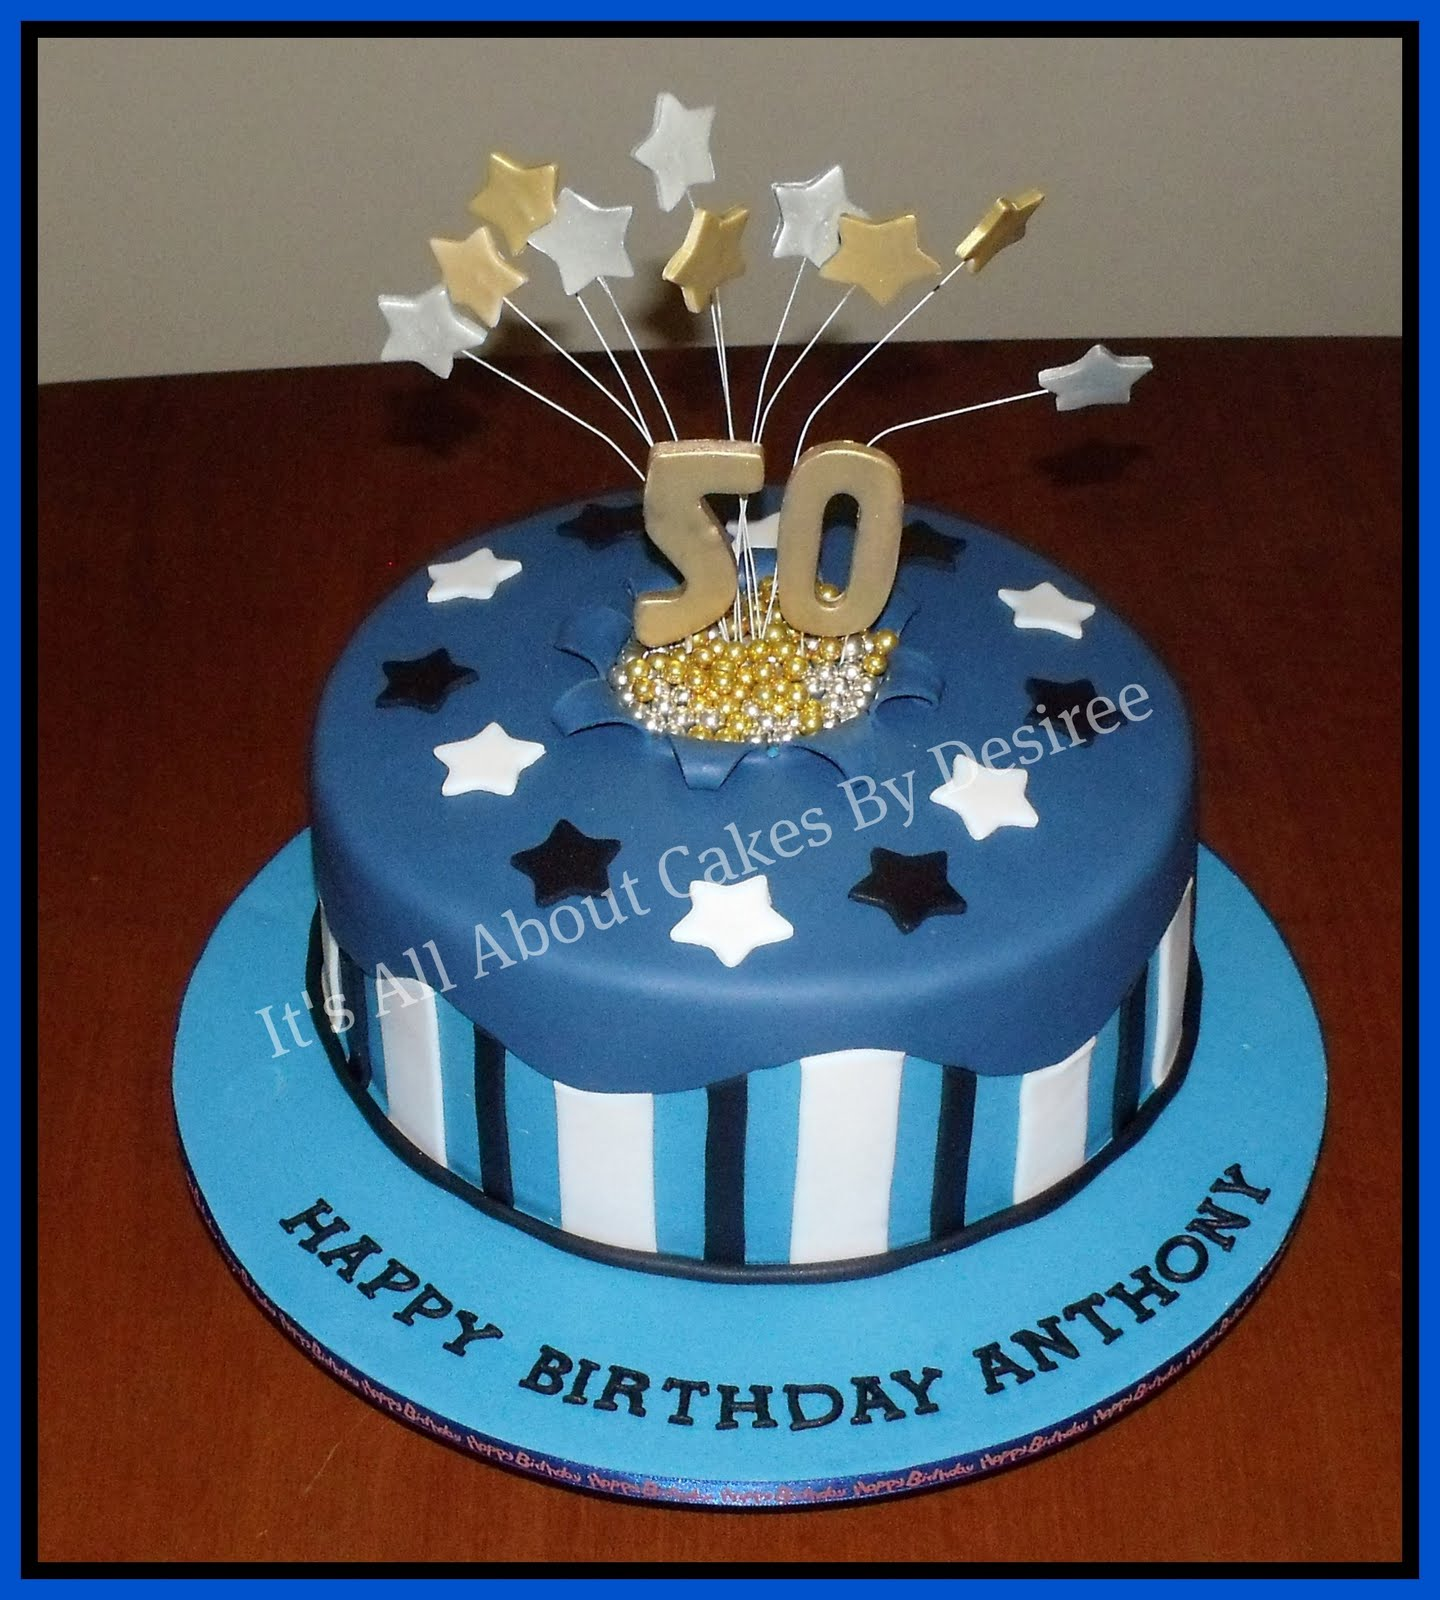 Birthday Cake Pictures For A Man : 50th birthday cakes on Pinterest 50th Birthday Cakes ...